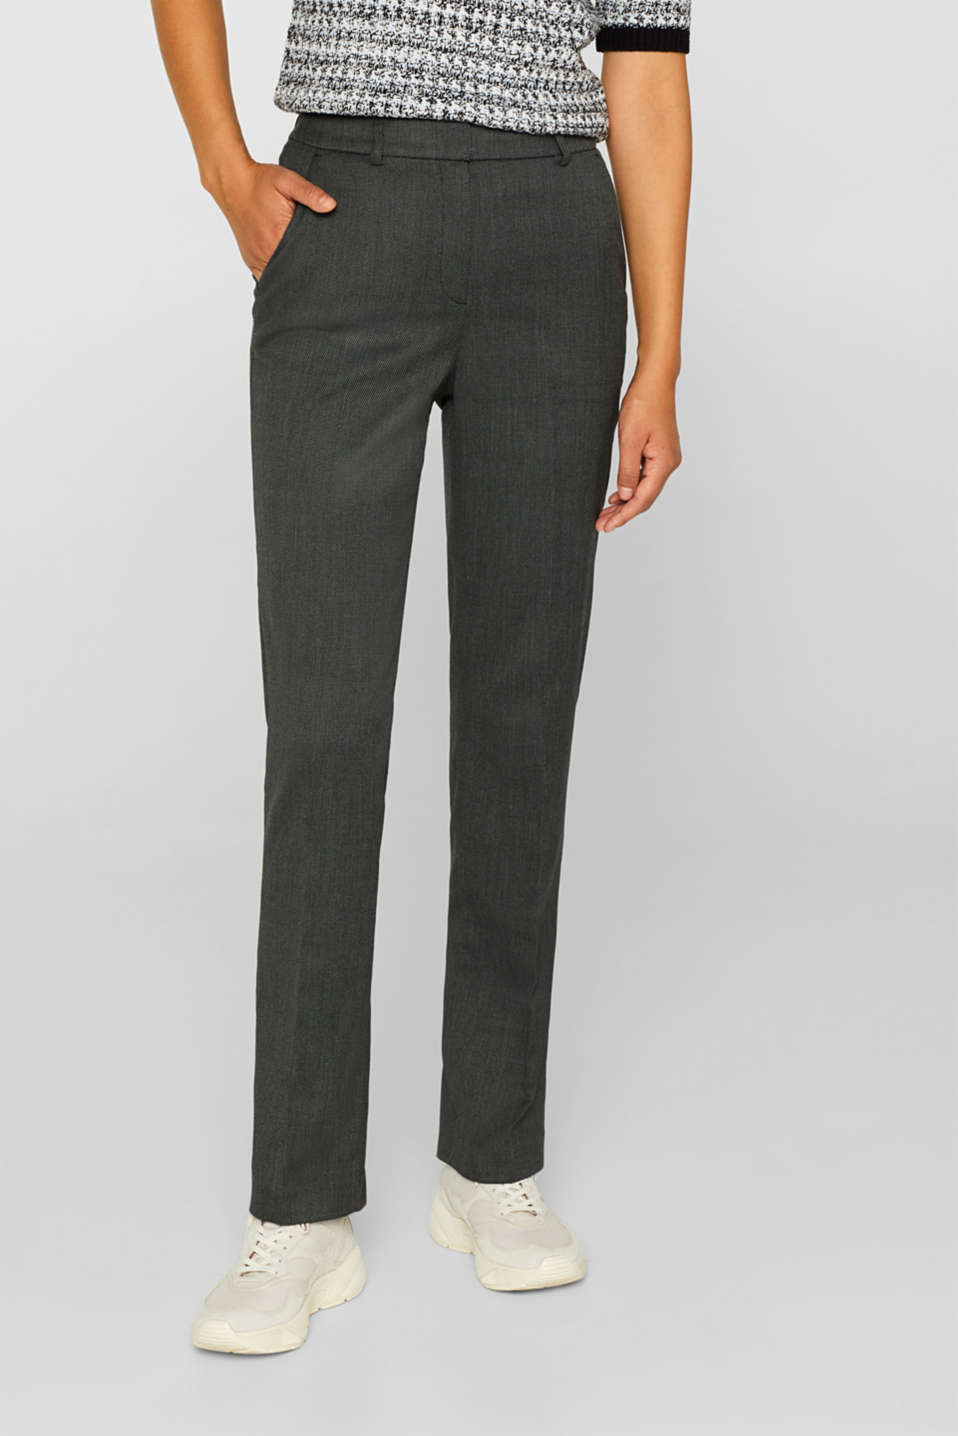 SALT'N PEPPER Mix + Match stretch trousers, ANTHRACITE, detail image number 5